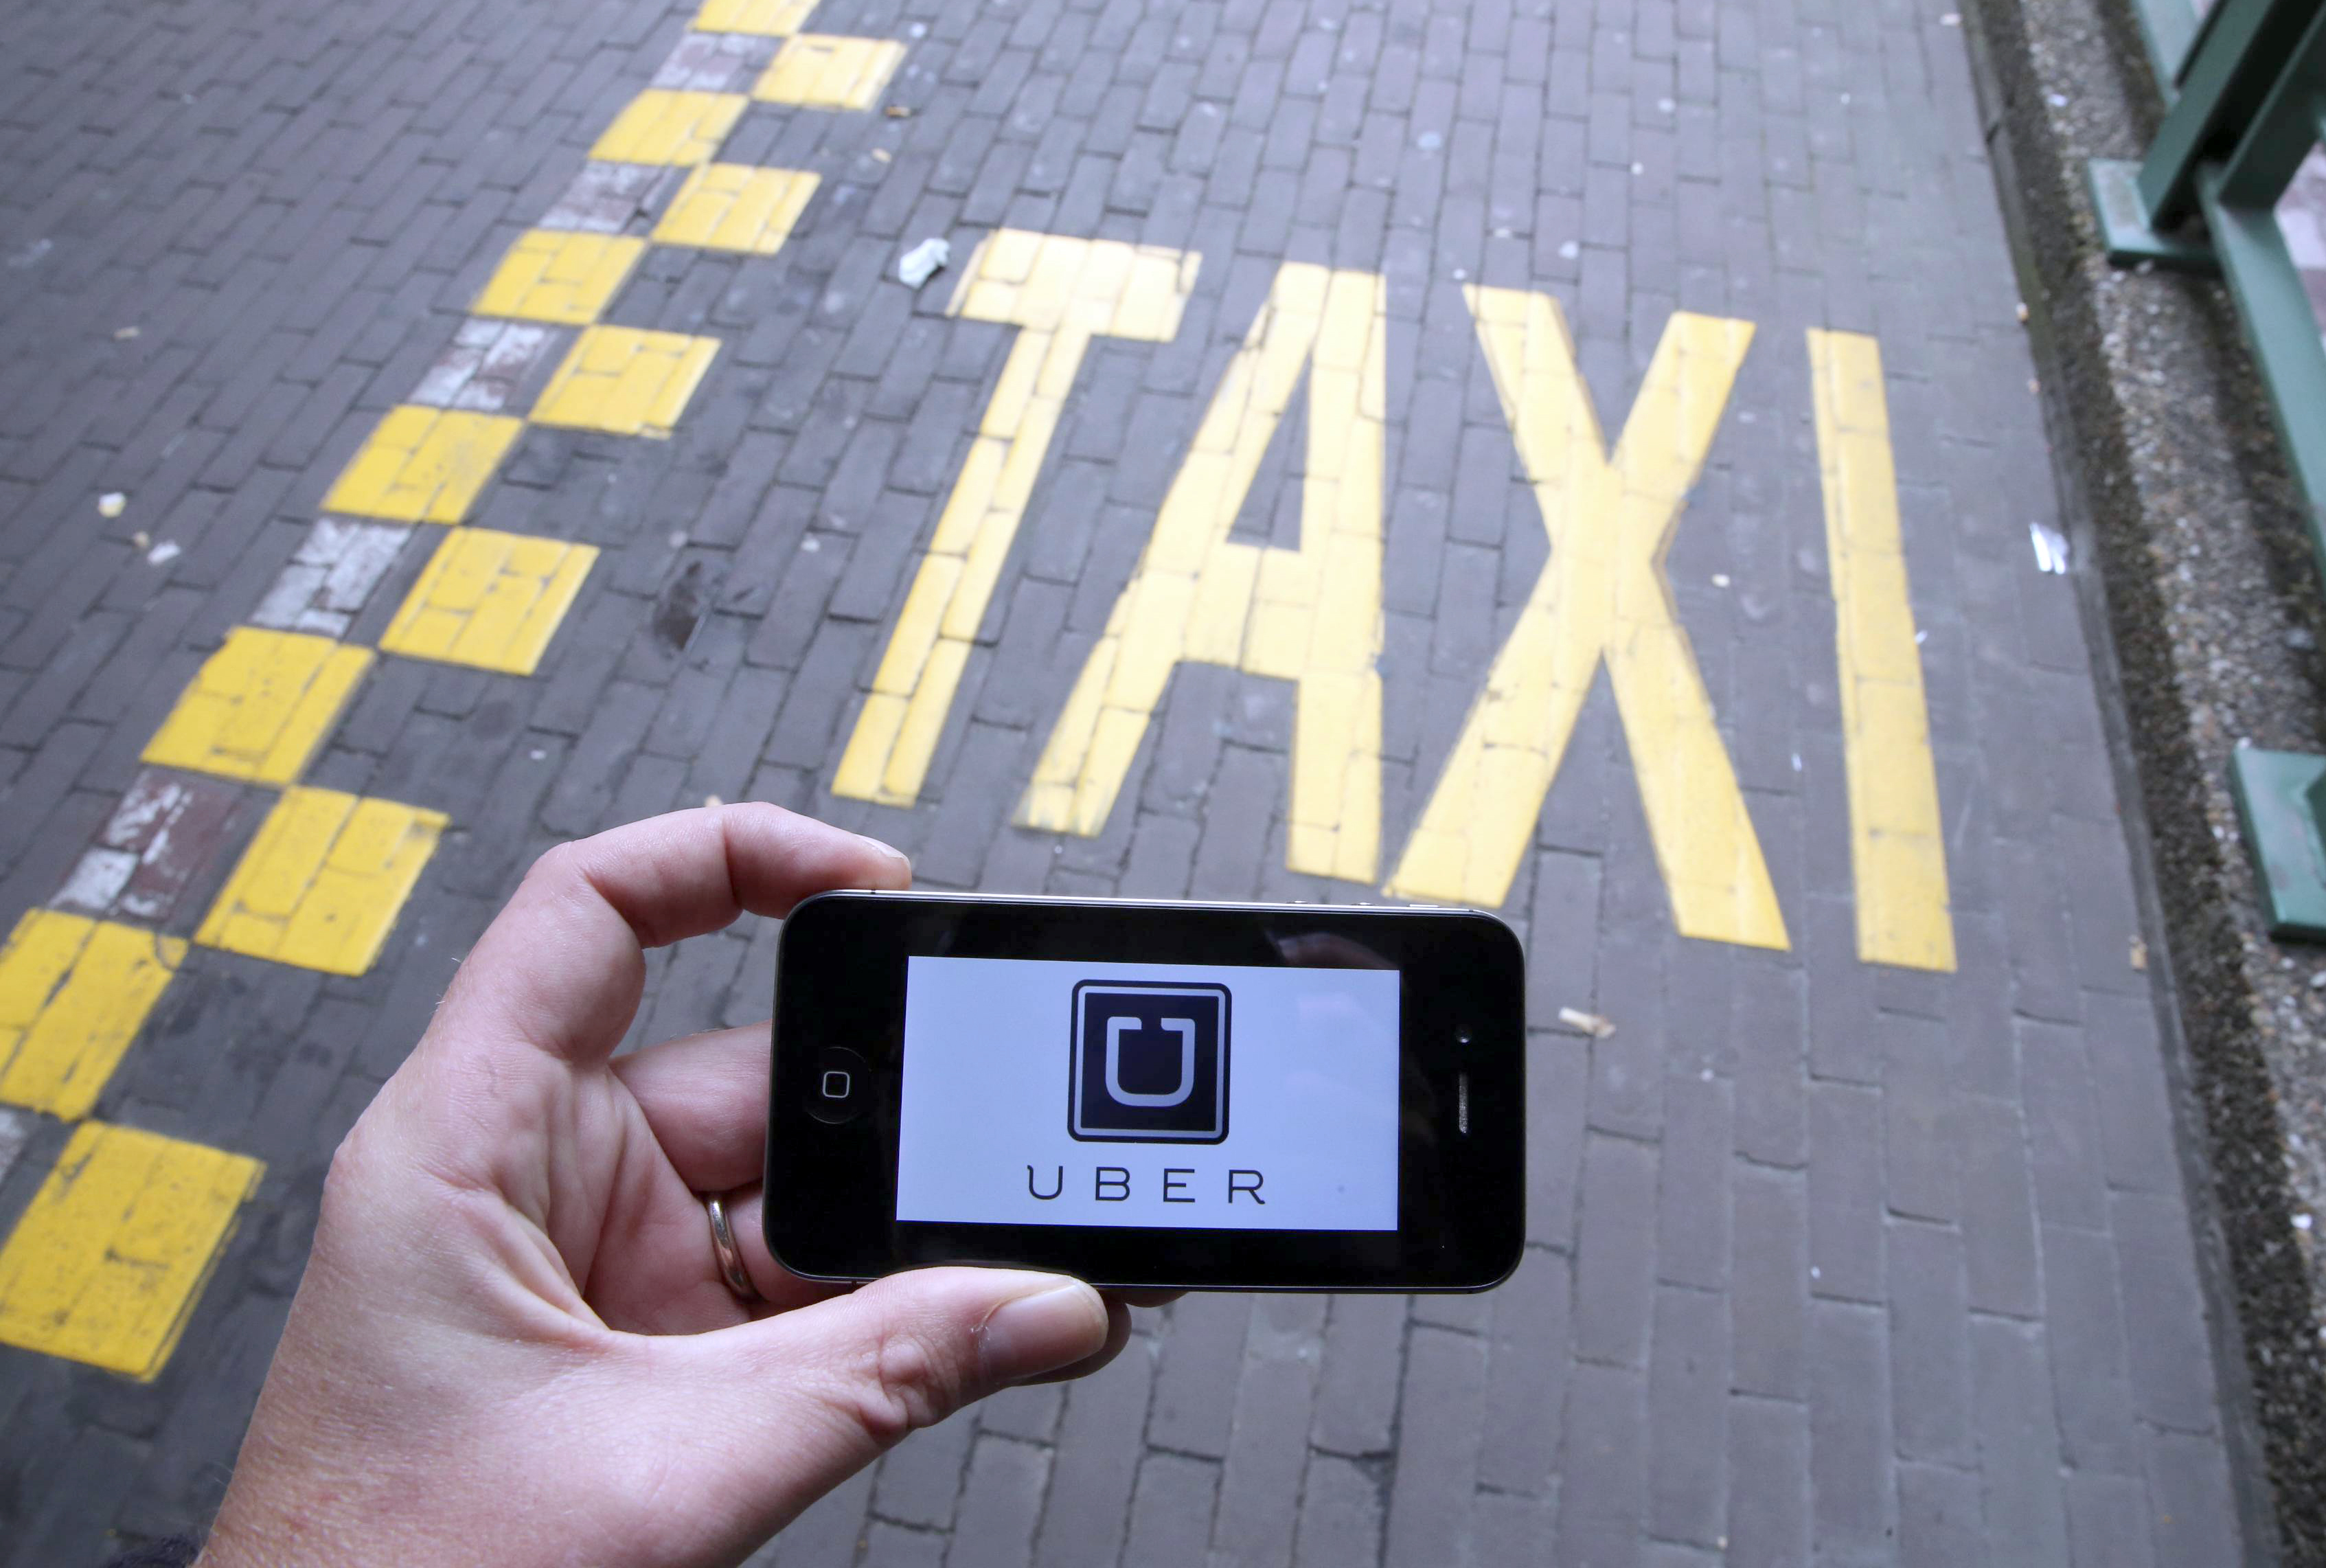 Majority of users don't think Uber should be regulated like a taxi.